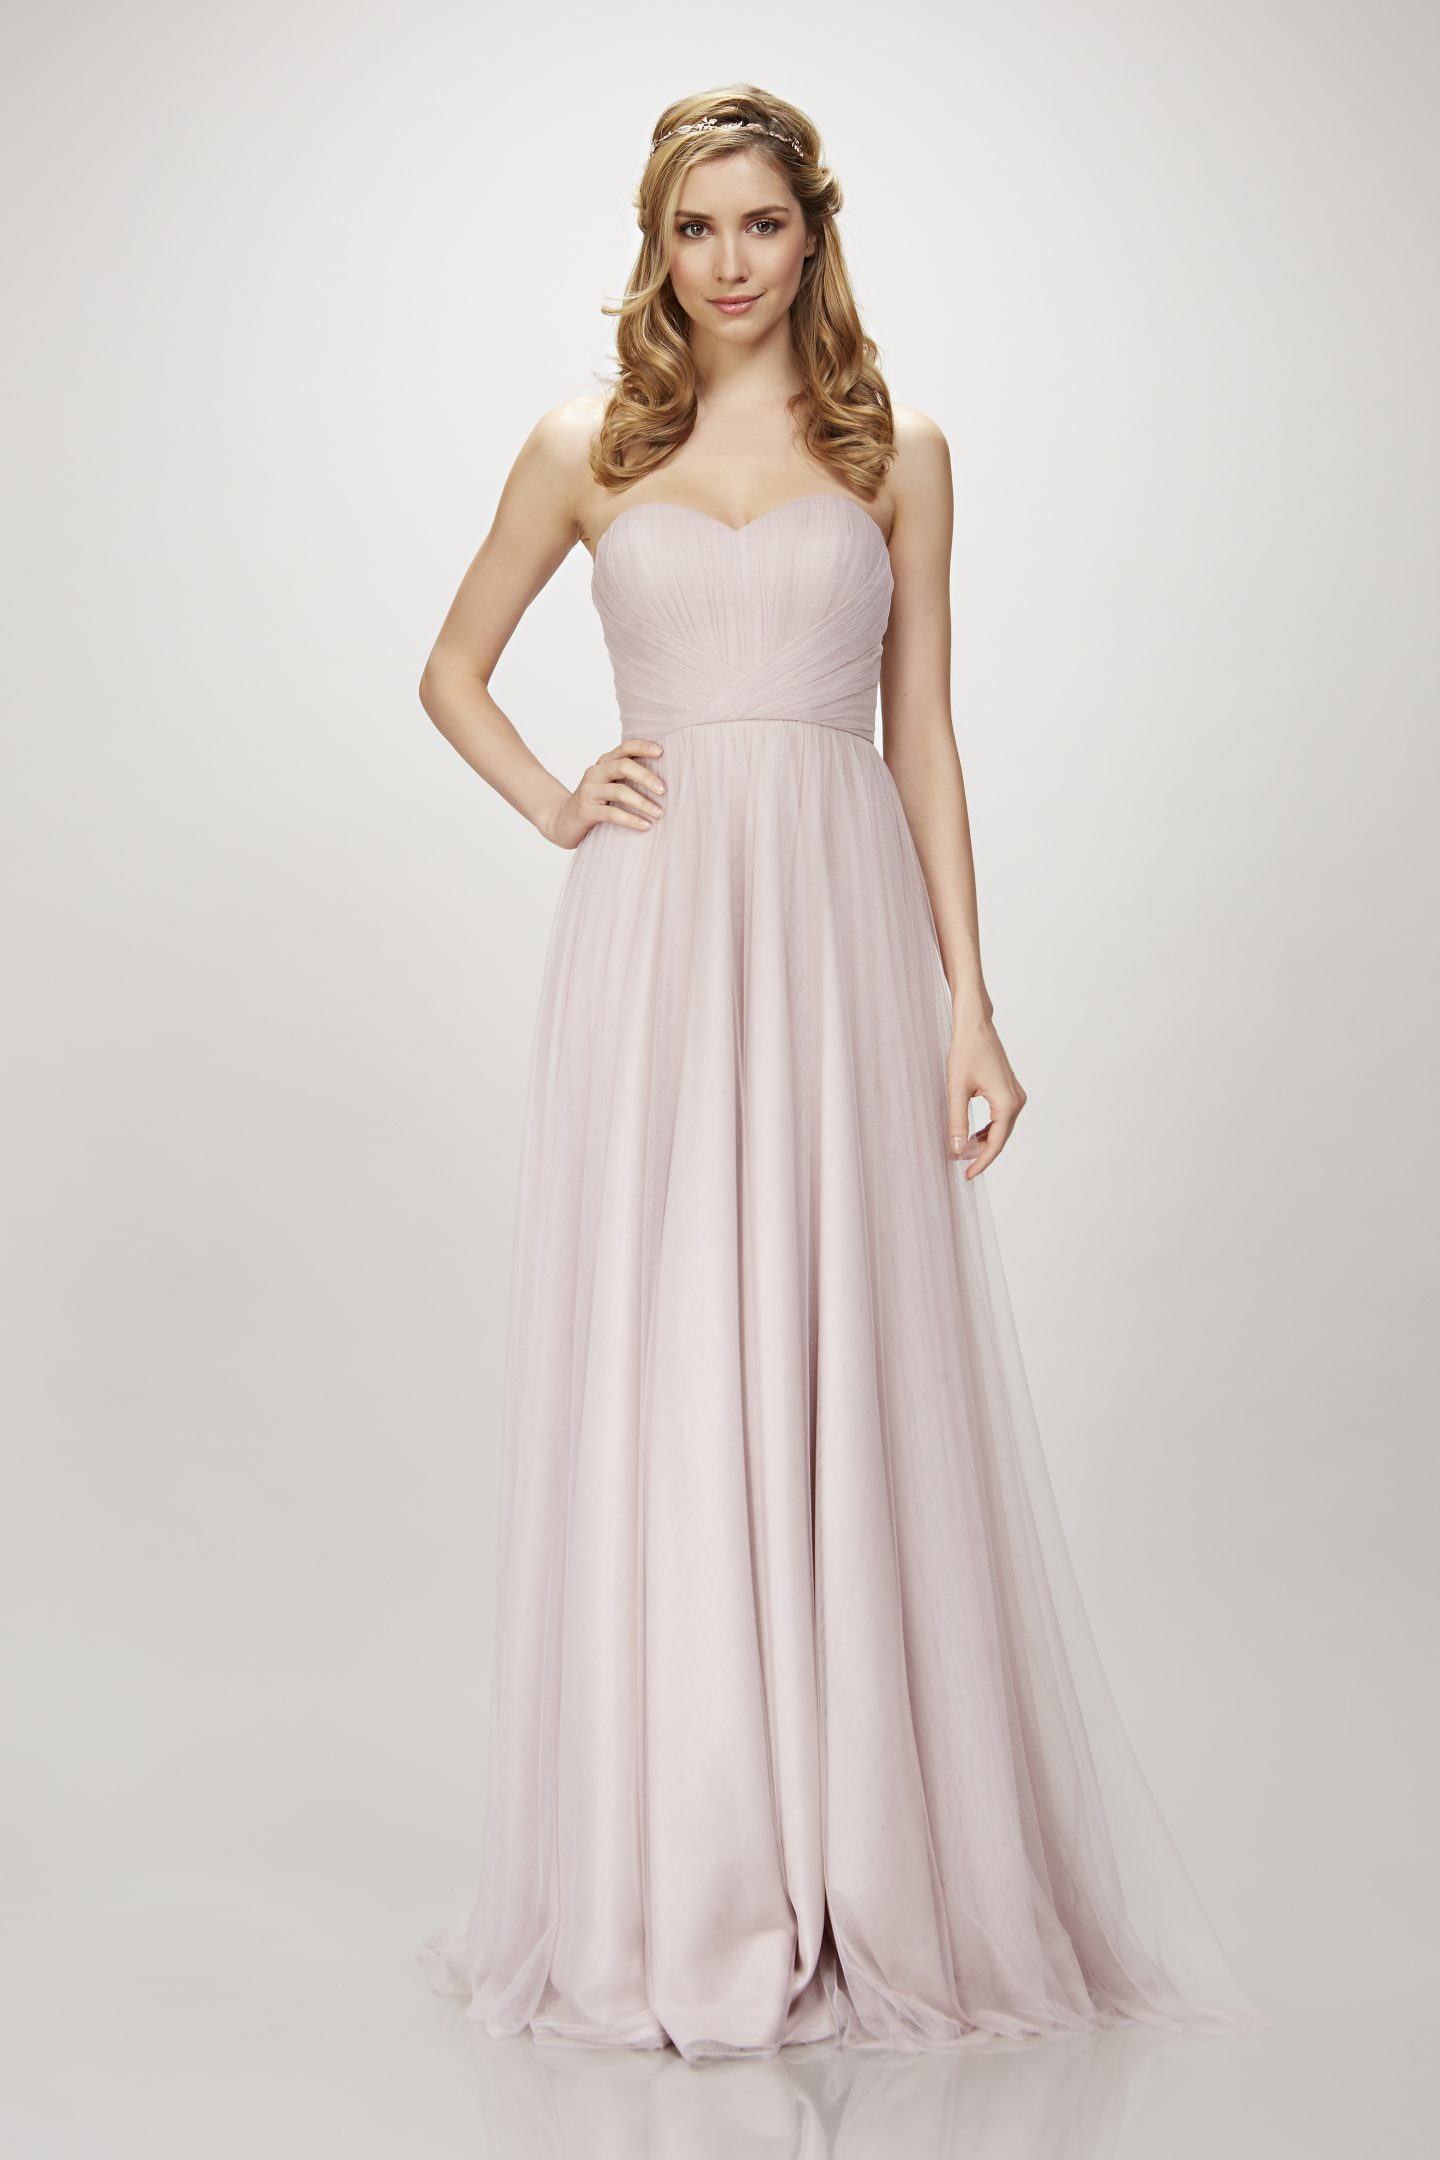 Magnolia Bridal Bridesmaid Dresses 14.jpg